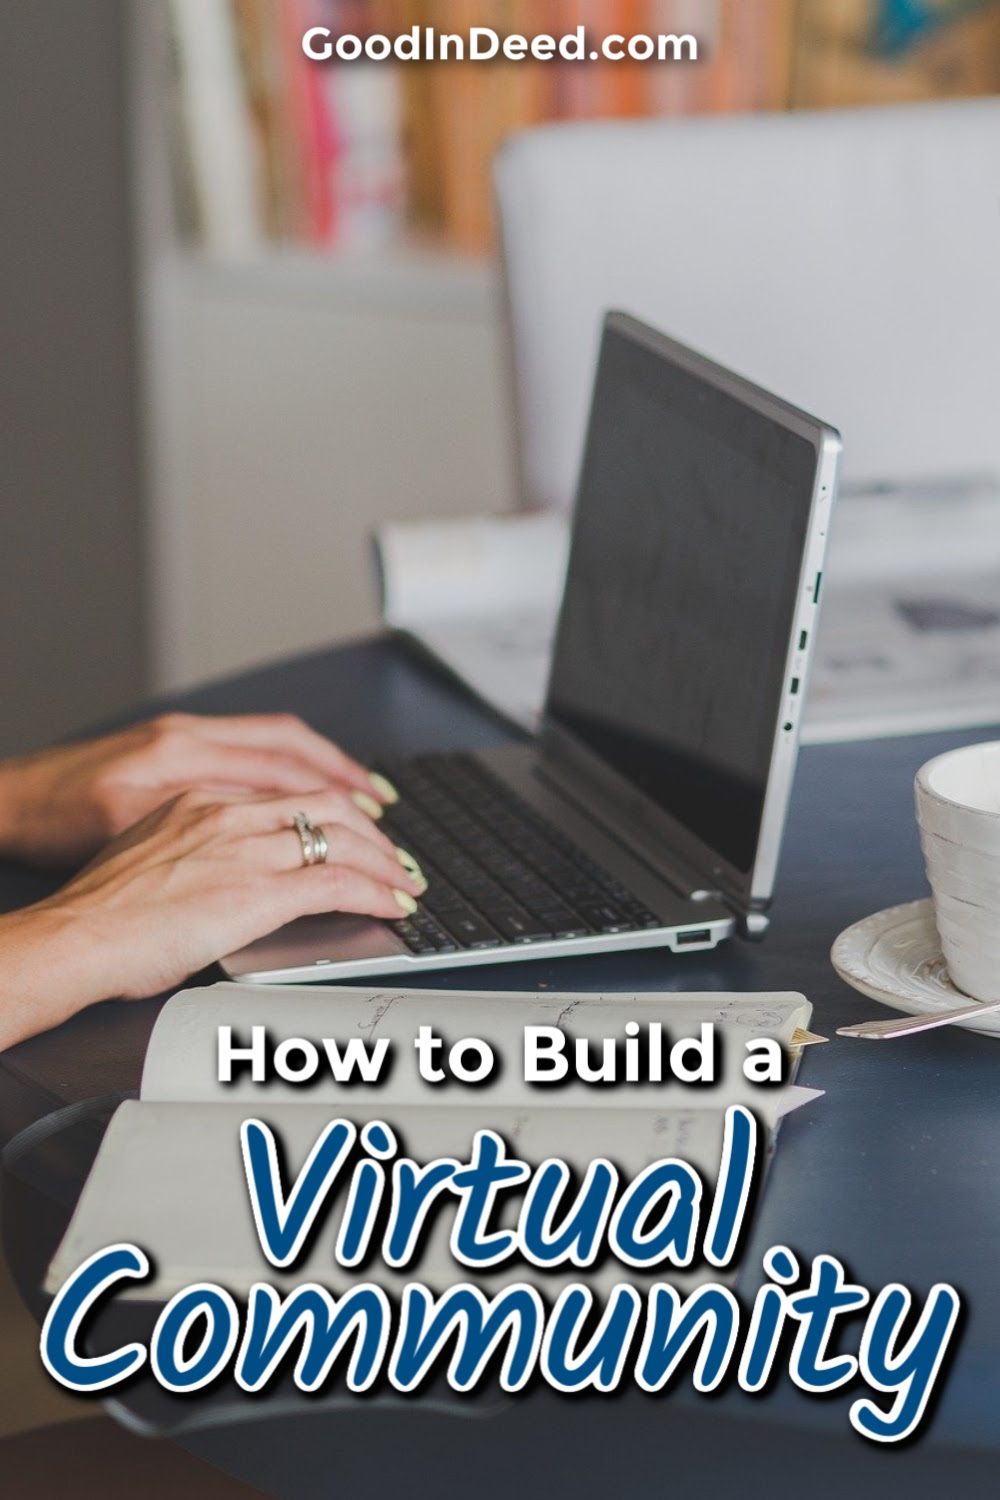 Learning how to build a virtual community is a good way to ensure that everyone keeps in touch with one another when you need it most.